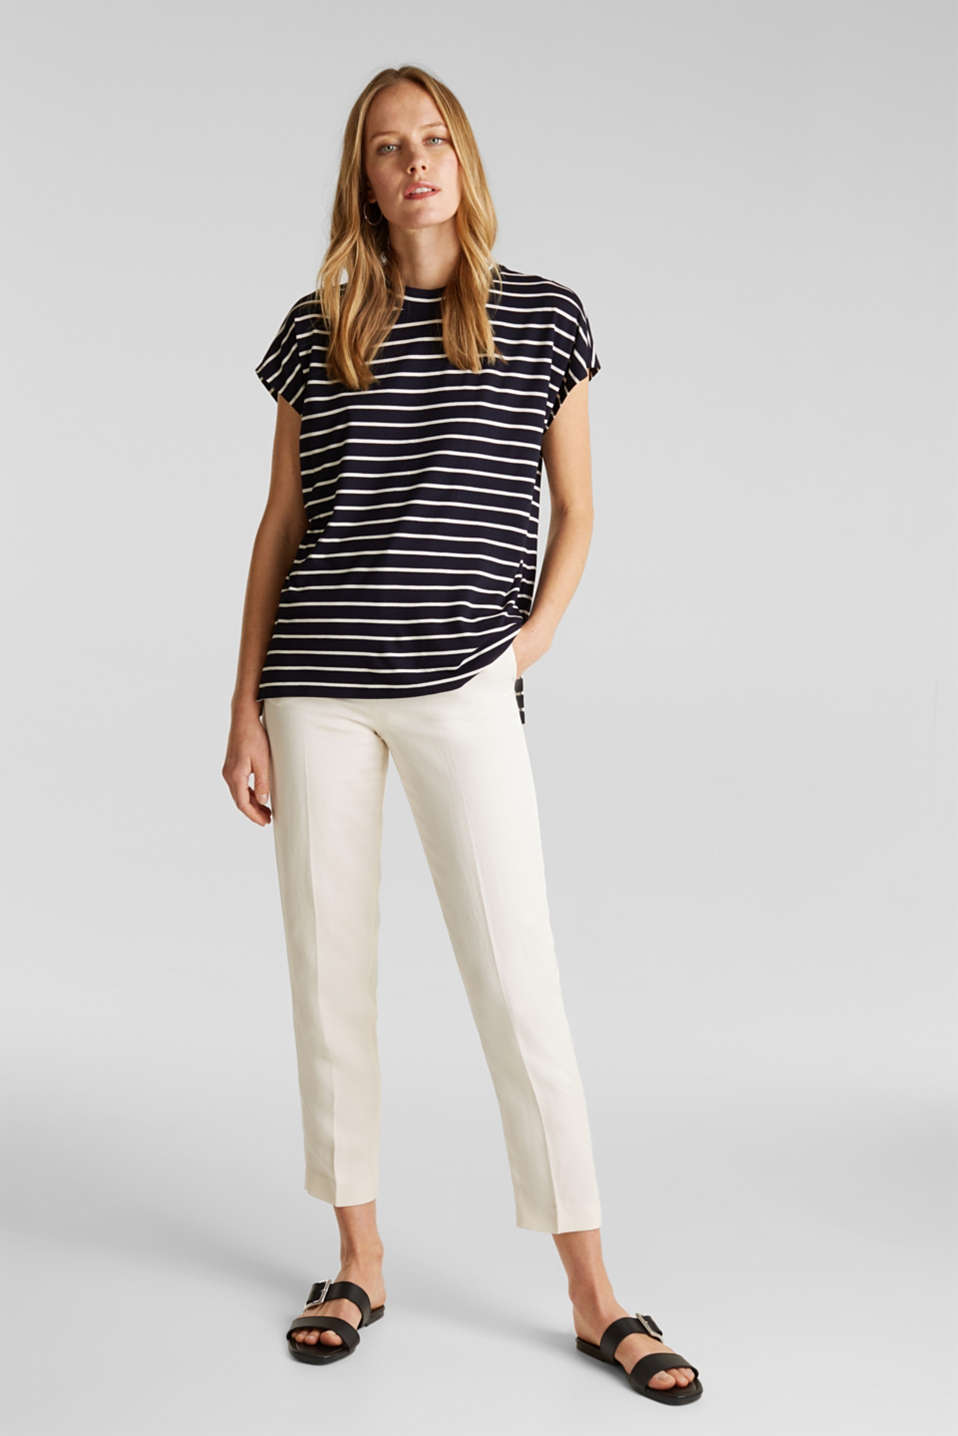 Stretch top with stripes, NAVY, detail image number 1